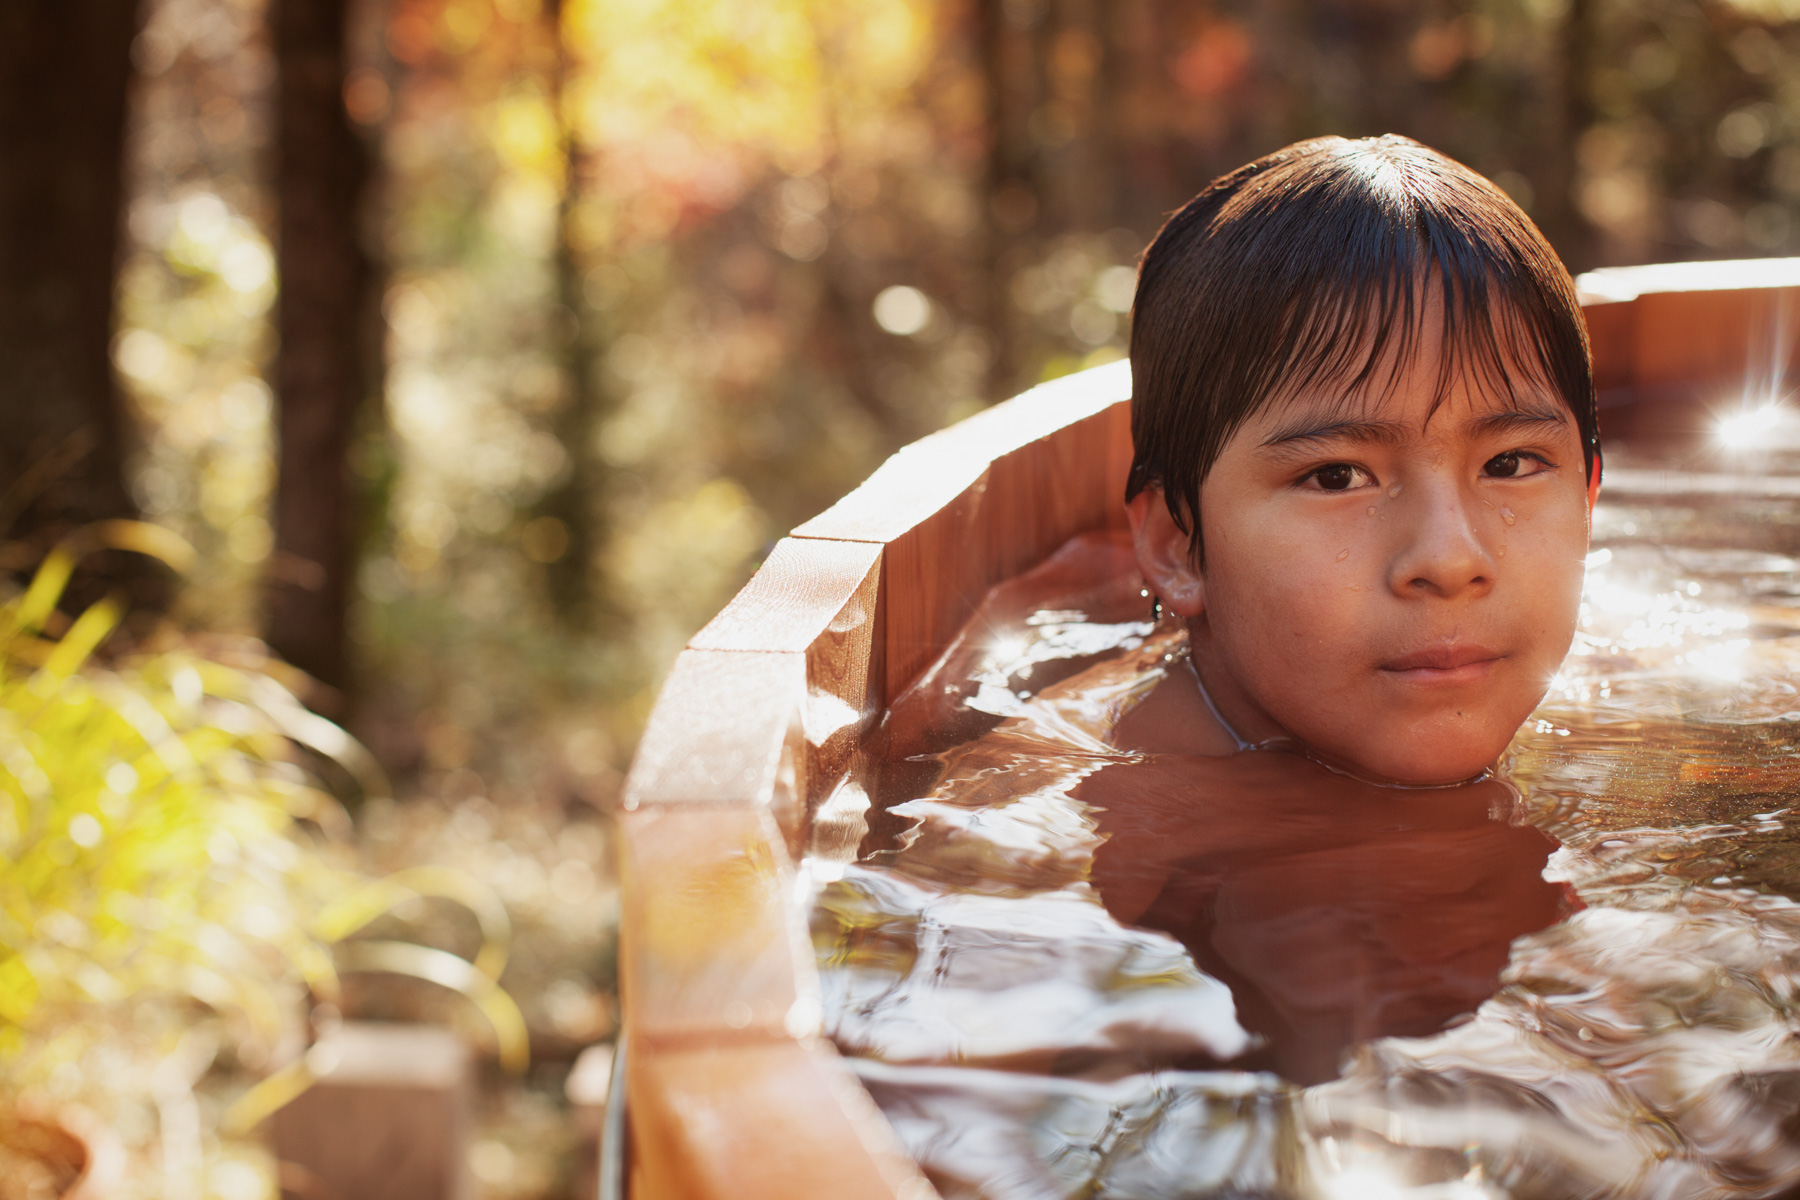 10/11/10 Phillipston, MA -- Mateo Gold, 7, soaks in the warmth of his family's wood-fired hot tub at home in Phillipston, Mass. Oct. 11, 2010.  Erik Jacobs for the New York Times